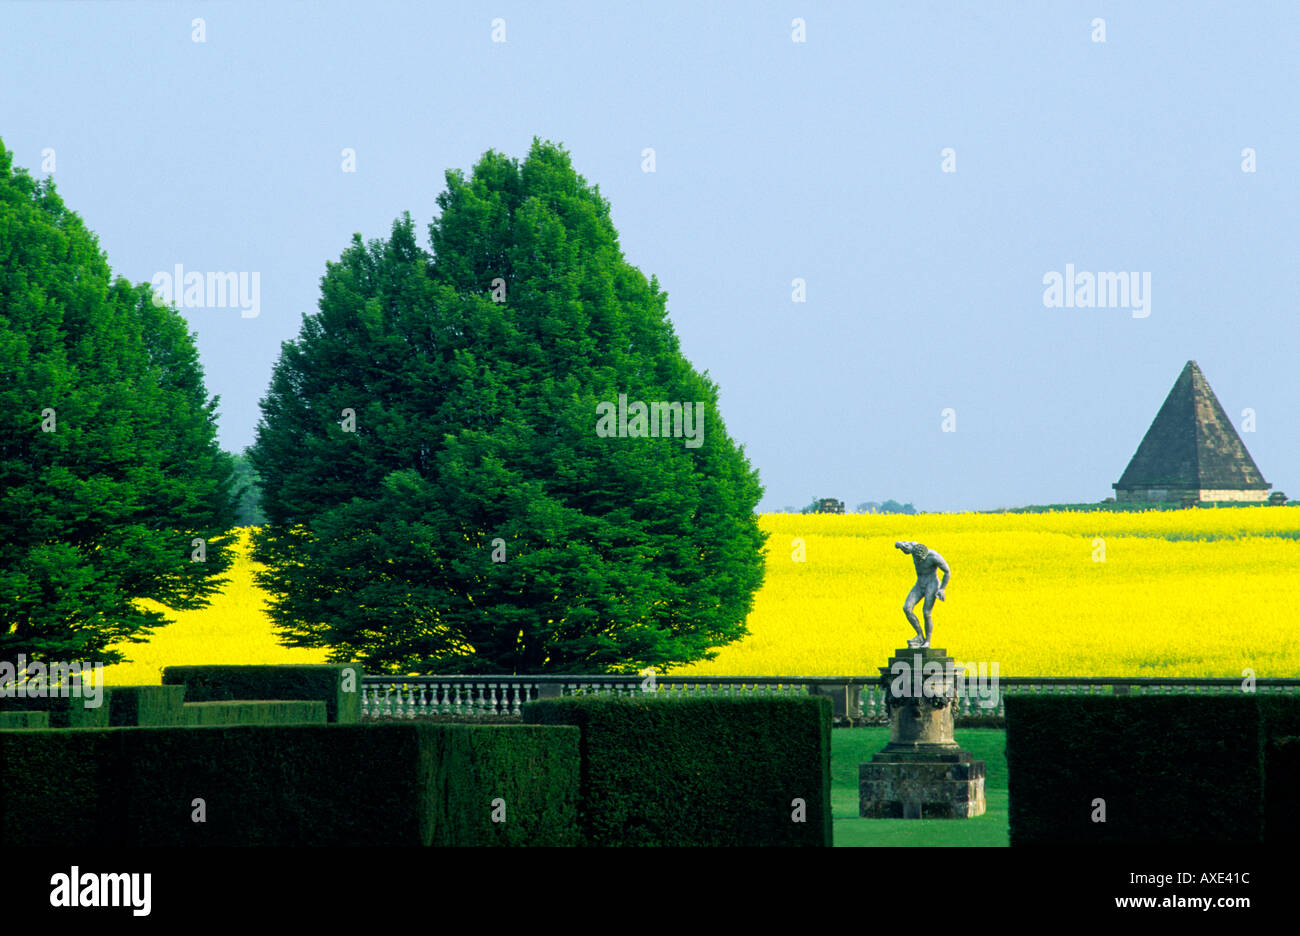 Castle Howard stately home mansion in North Yorkshire, England. Garden detail statue The Dancing Faun circa 1740. - Stock Image